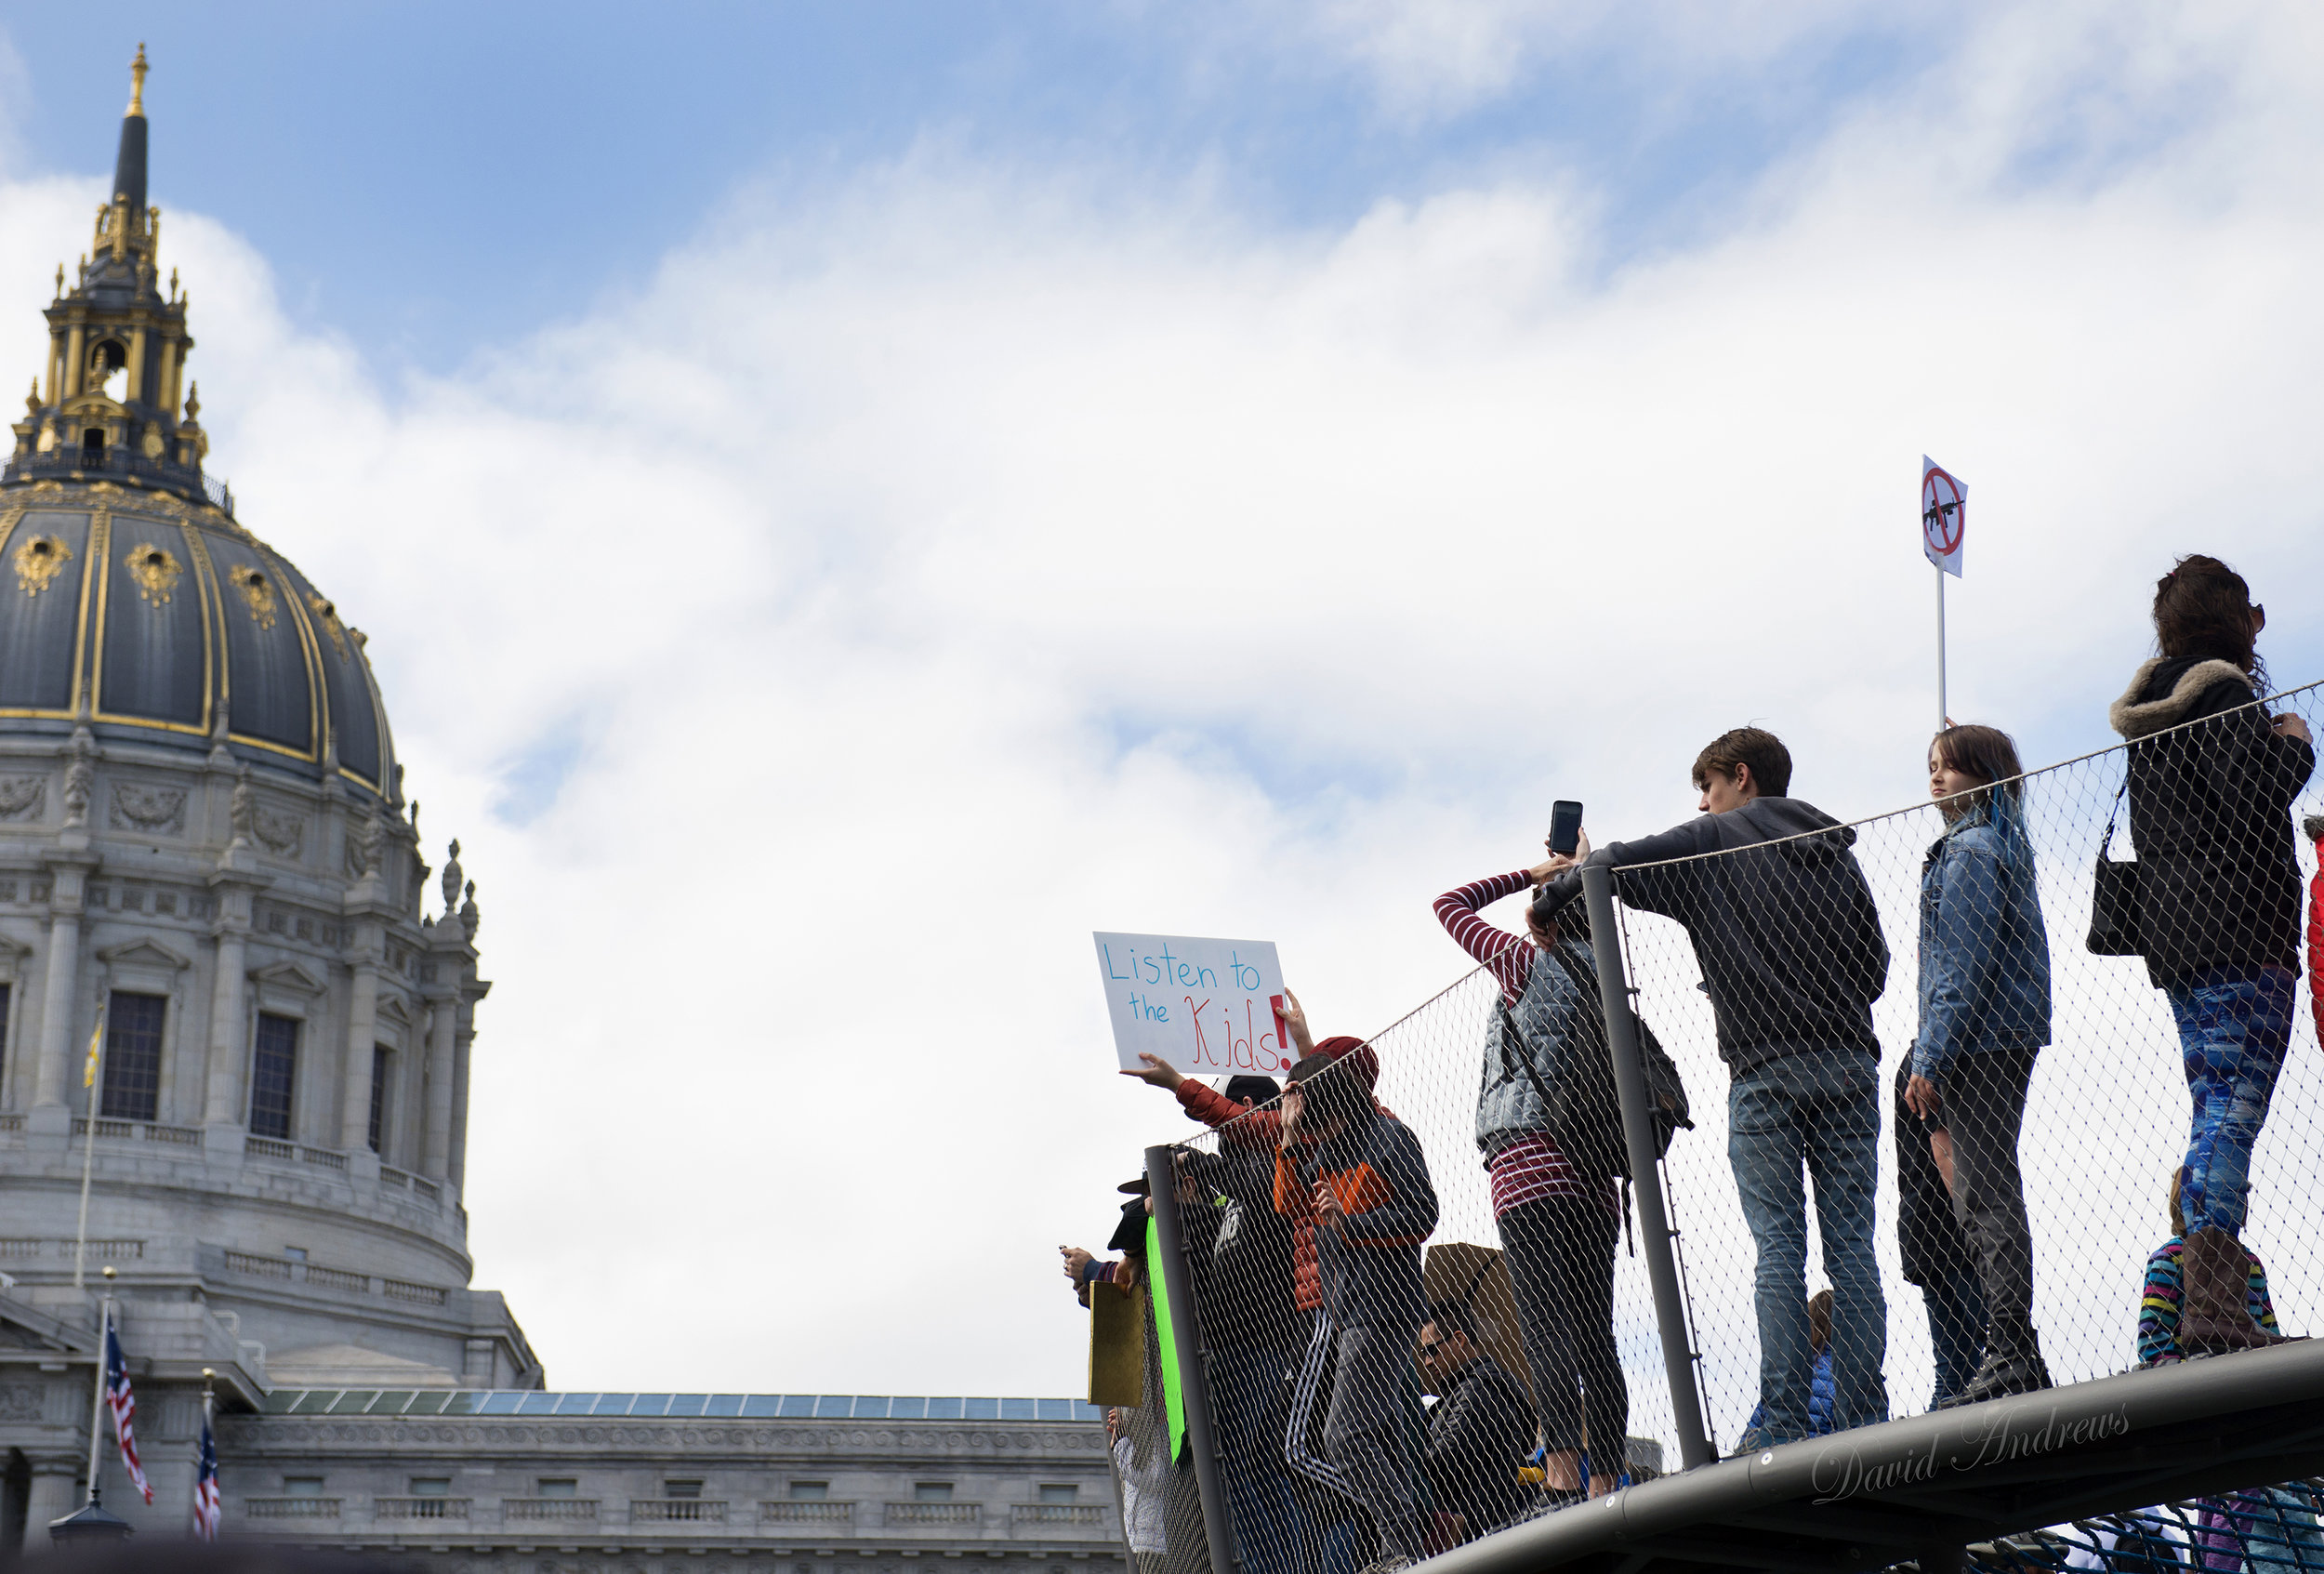 """A protester holds a """"Listen to the kids"""" sign while standing on playground equipment outside City Hall during the 'March for our Lives' demonstration in San Francisco, Ca. on Saturday, March 24, 2018. The gathering in San Francisco was one of many marches nationwide to advocate for voter registration in an effort to vote to curb US gun laws. Photo by David Andrews."""